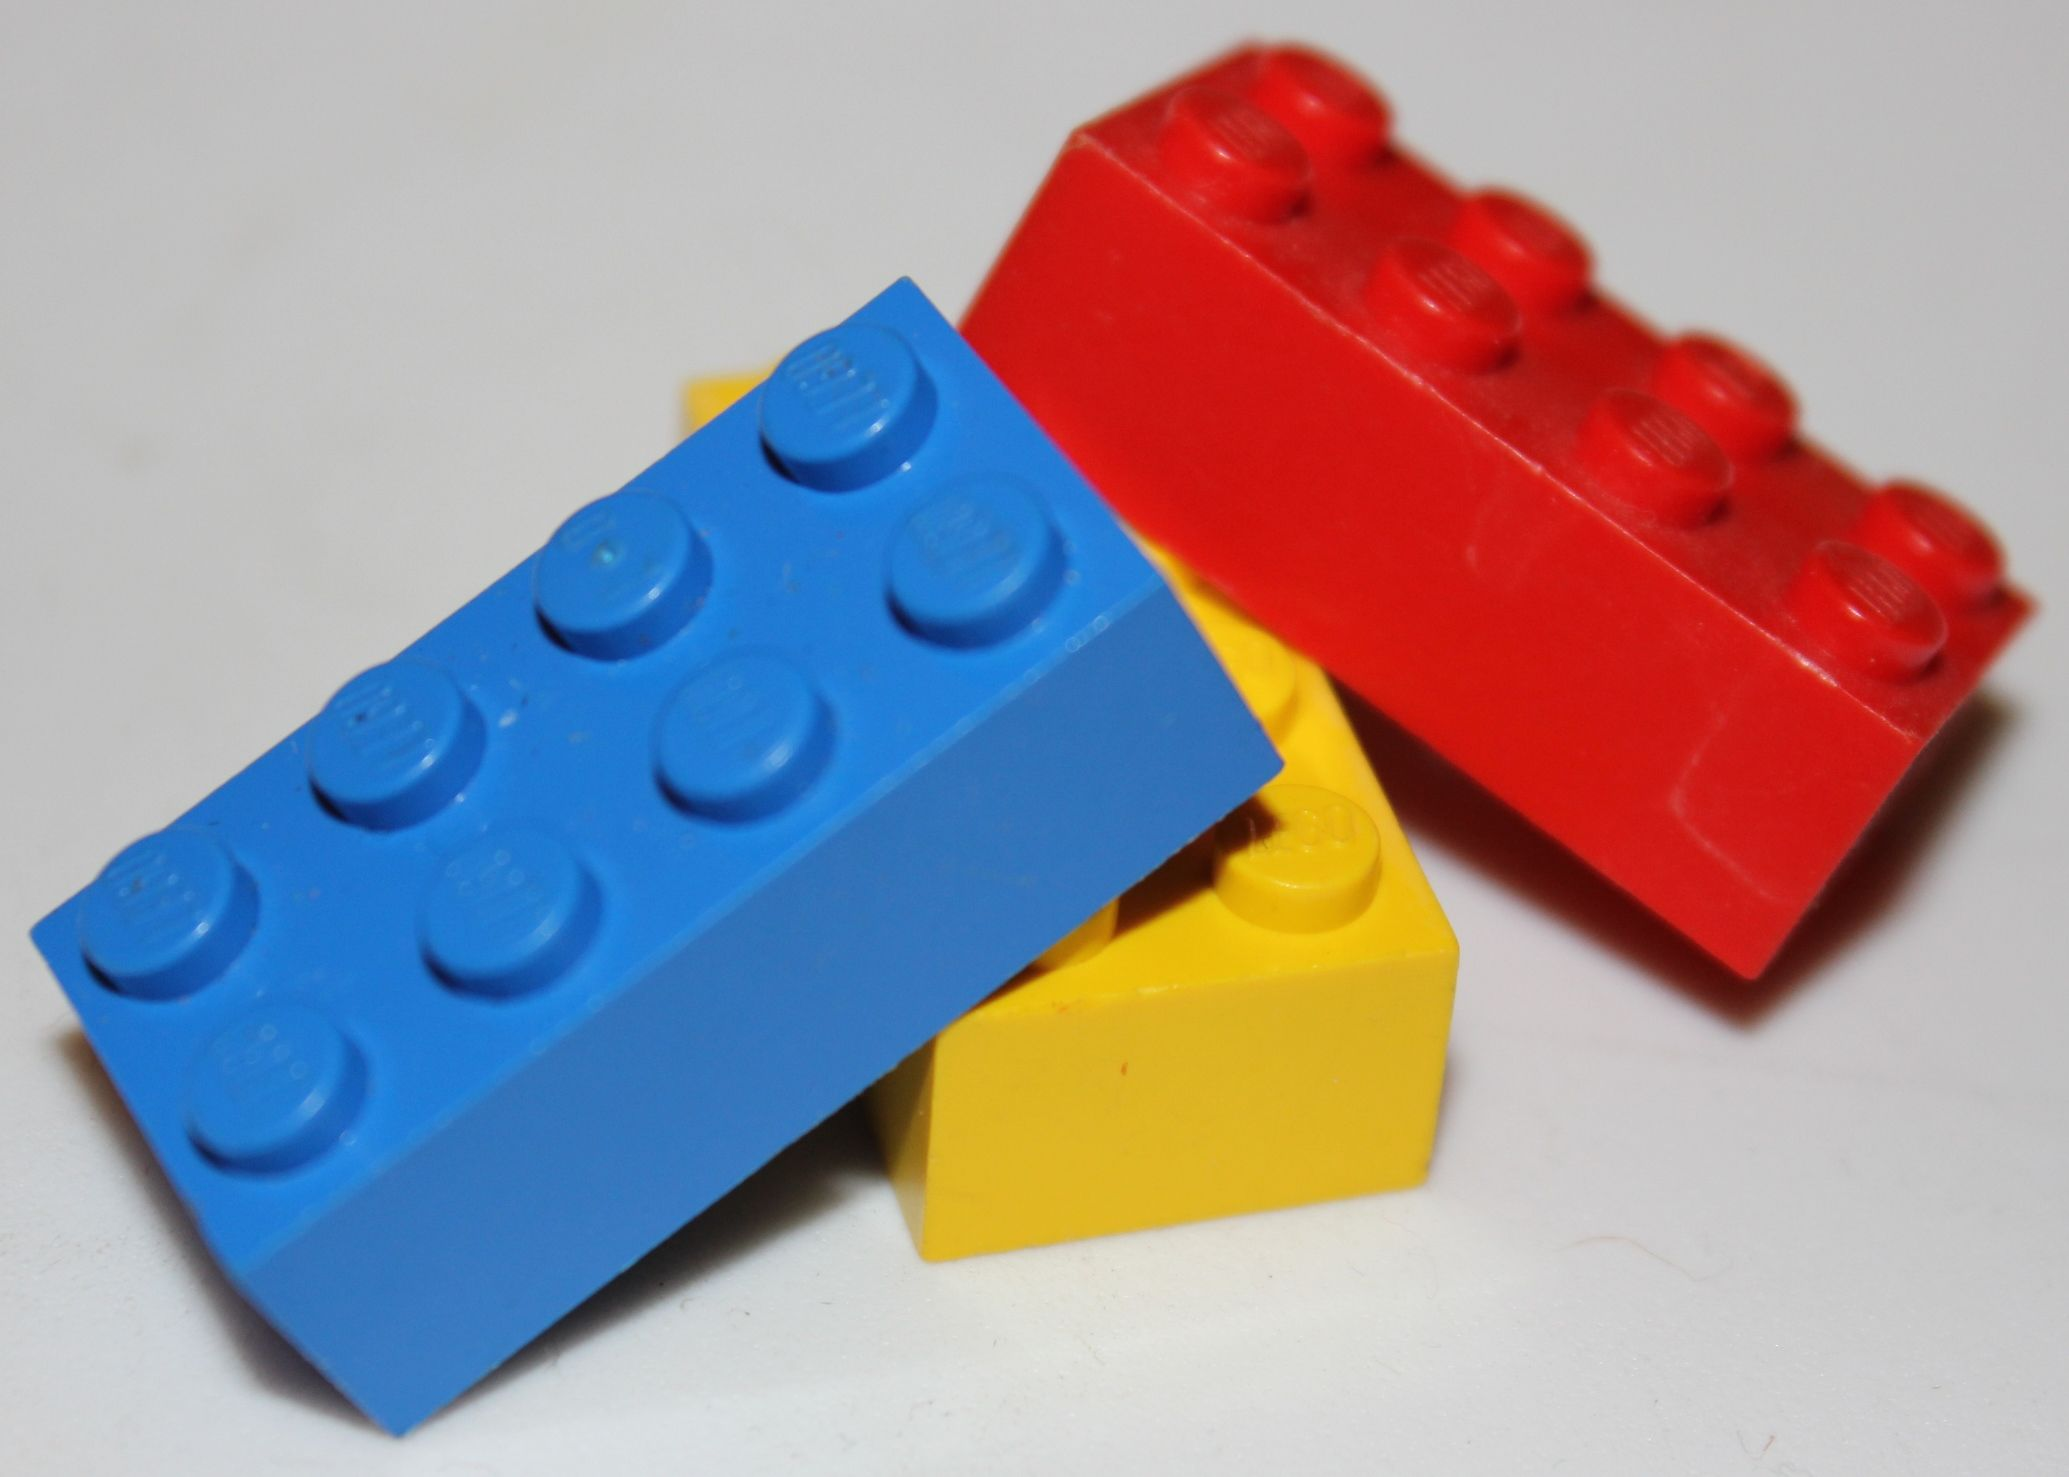 Every Tuesday We Post A Little Piece Of Trivia About Legos